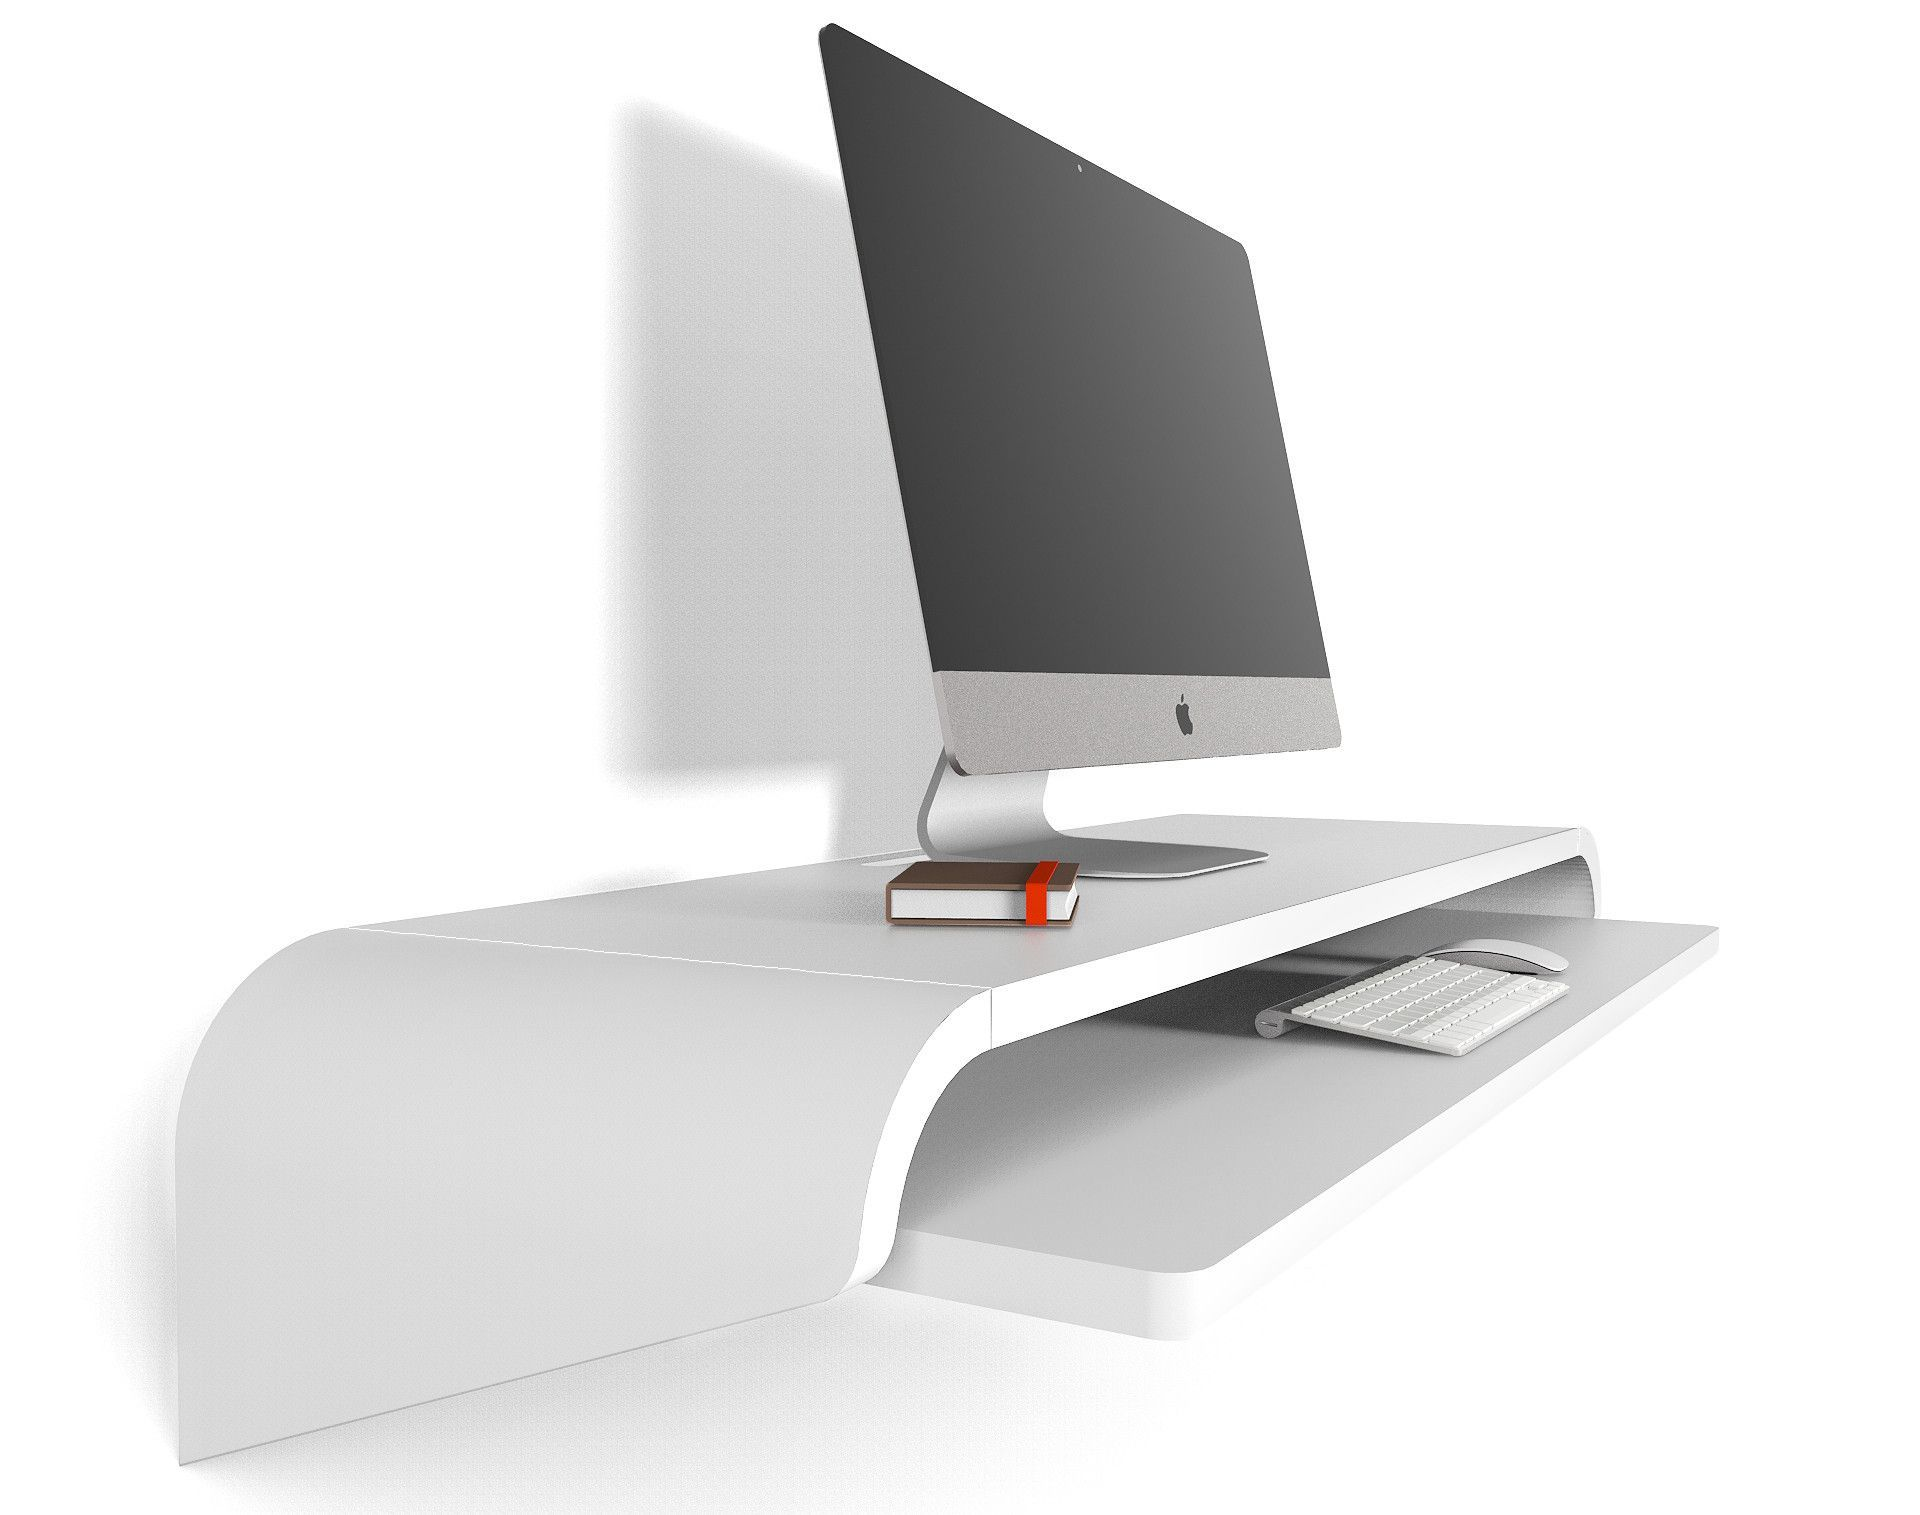 Minimal Wall Desk White Large Ideal For Home Office In Stock Discount Available 10 Use Code Save10now Wall Desk Minimal Wall Desk Floating Desk